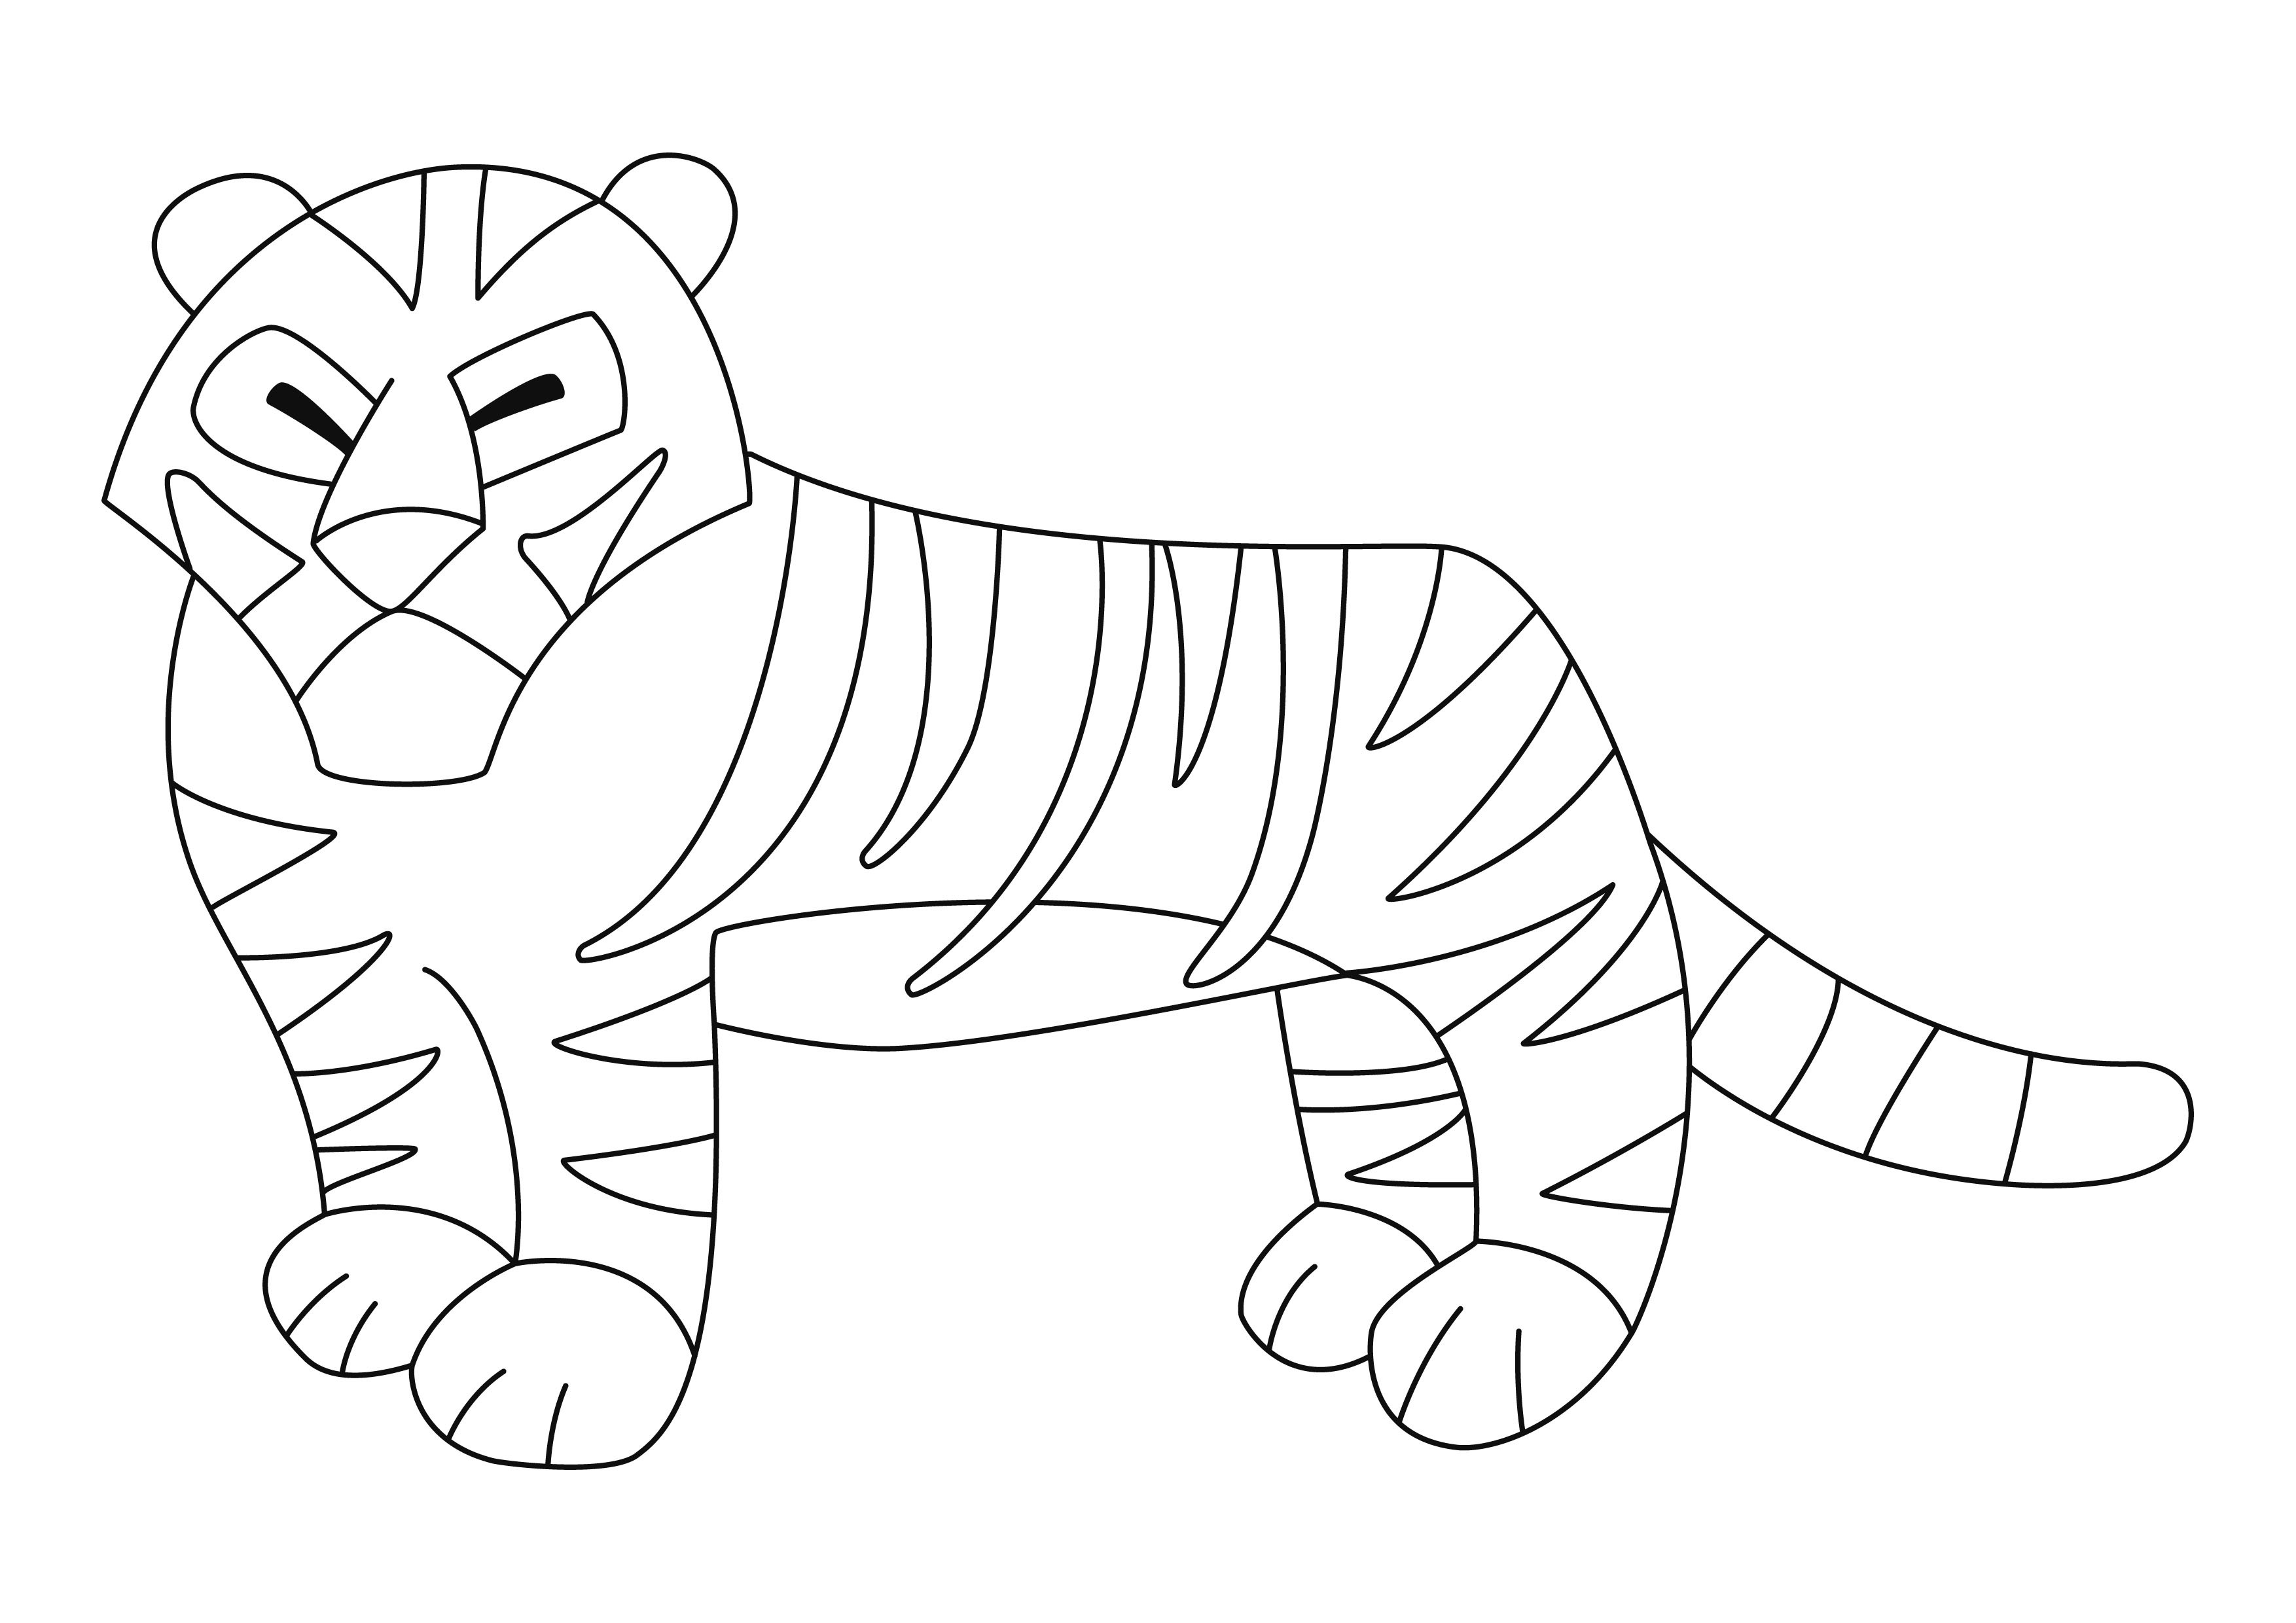 Coloriage - Animaux : Tigre 01 - 10 Doigts